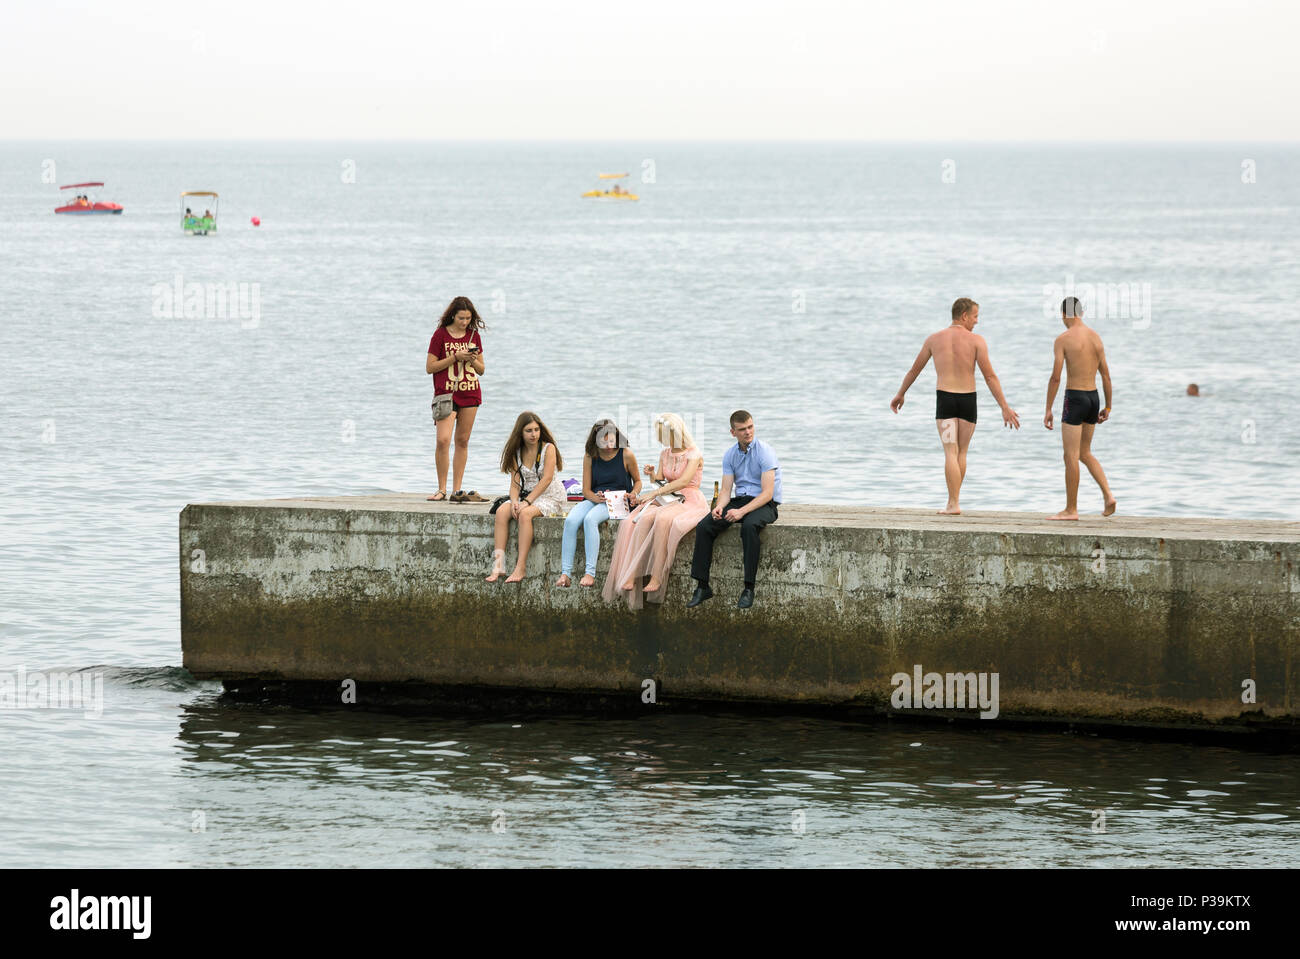 Odessa, Ukraine, people on a pier on the Black Sea - Stock Image